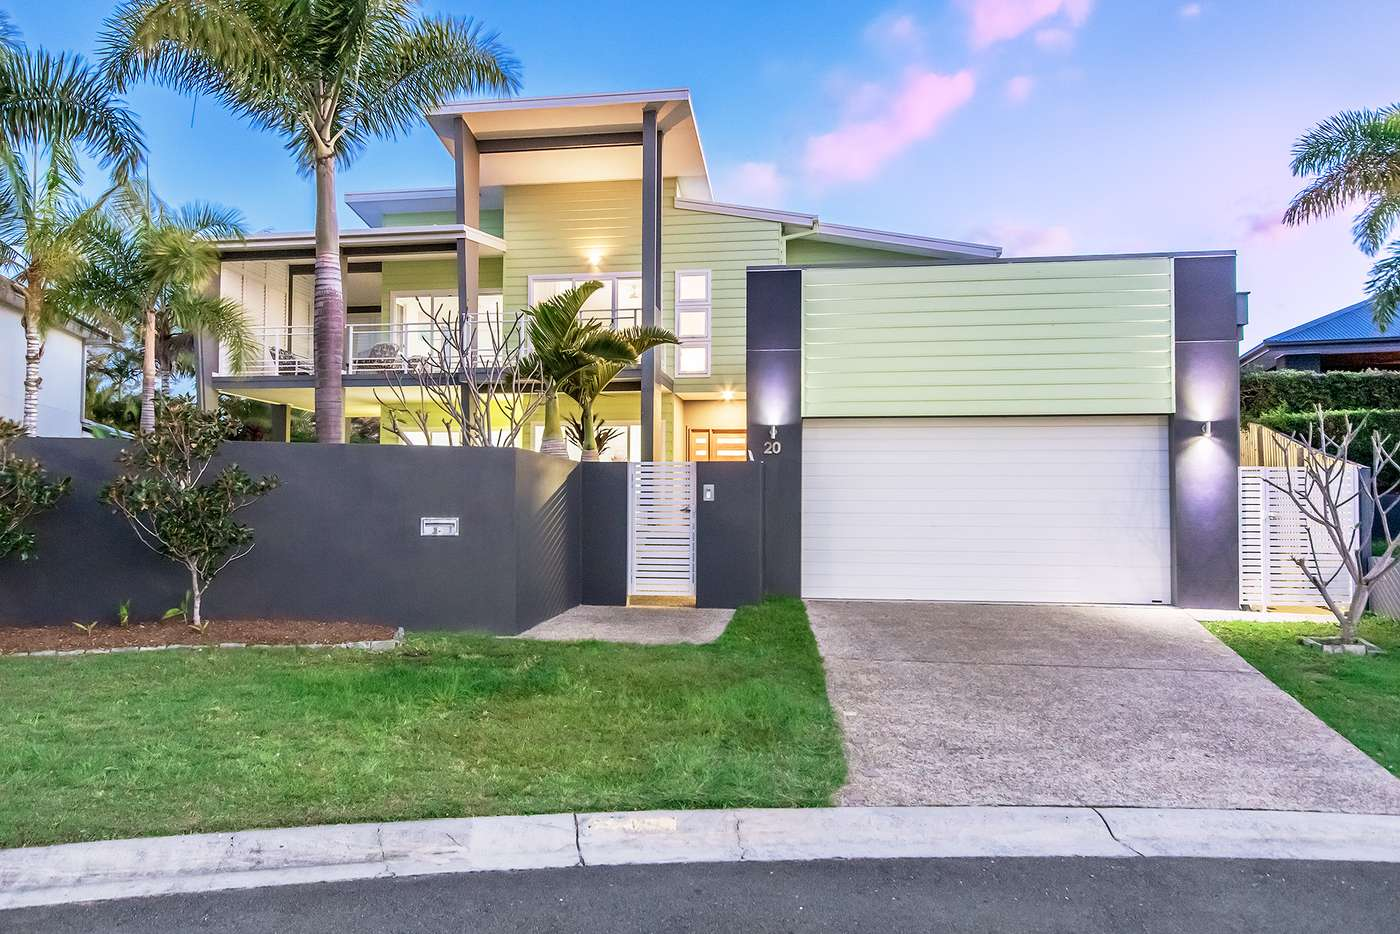 Fifth view of Homely house listing, 20 Barton Street, Reedy Creek QLD 4227